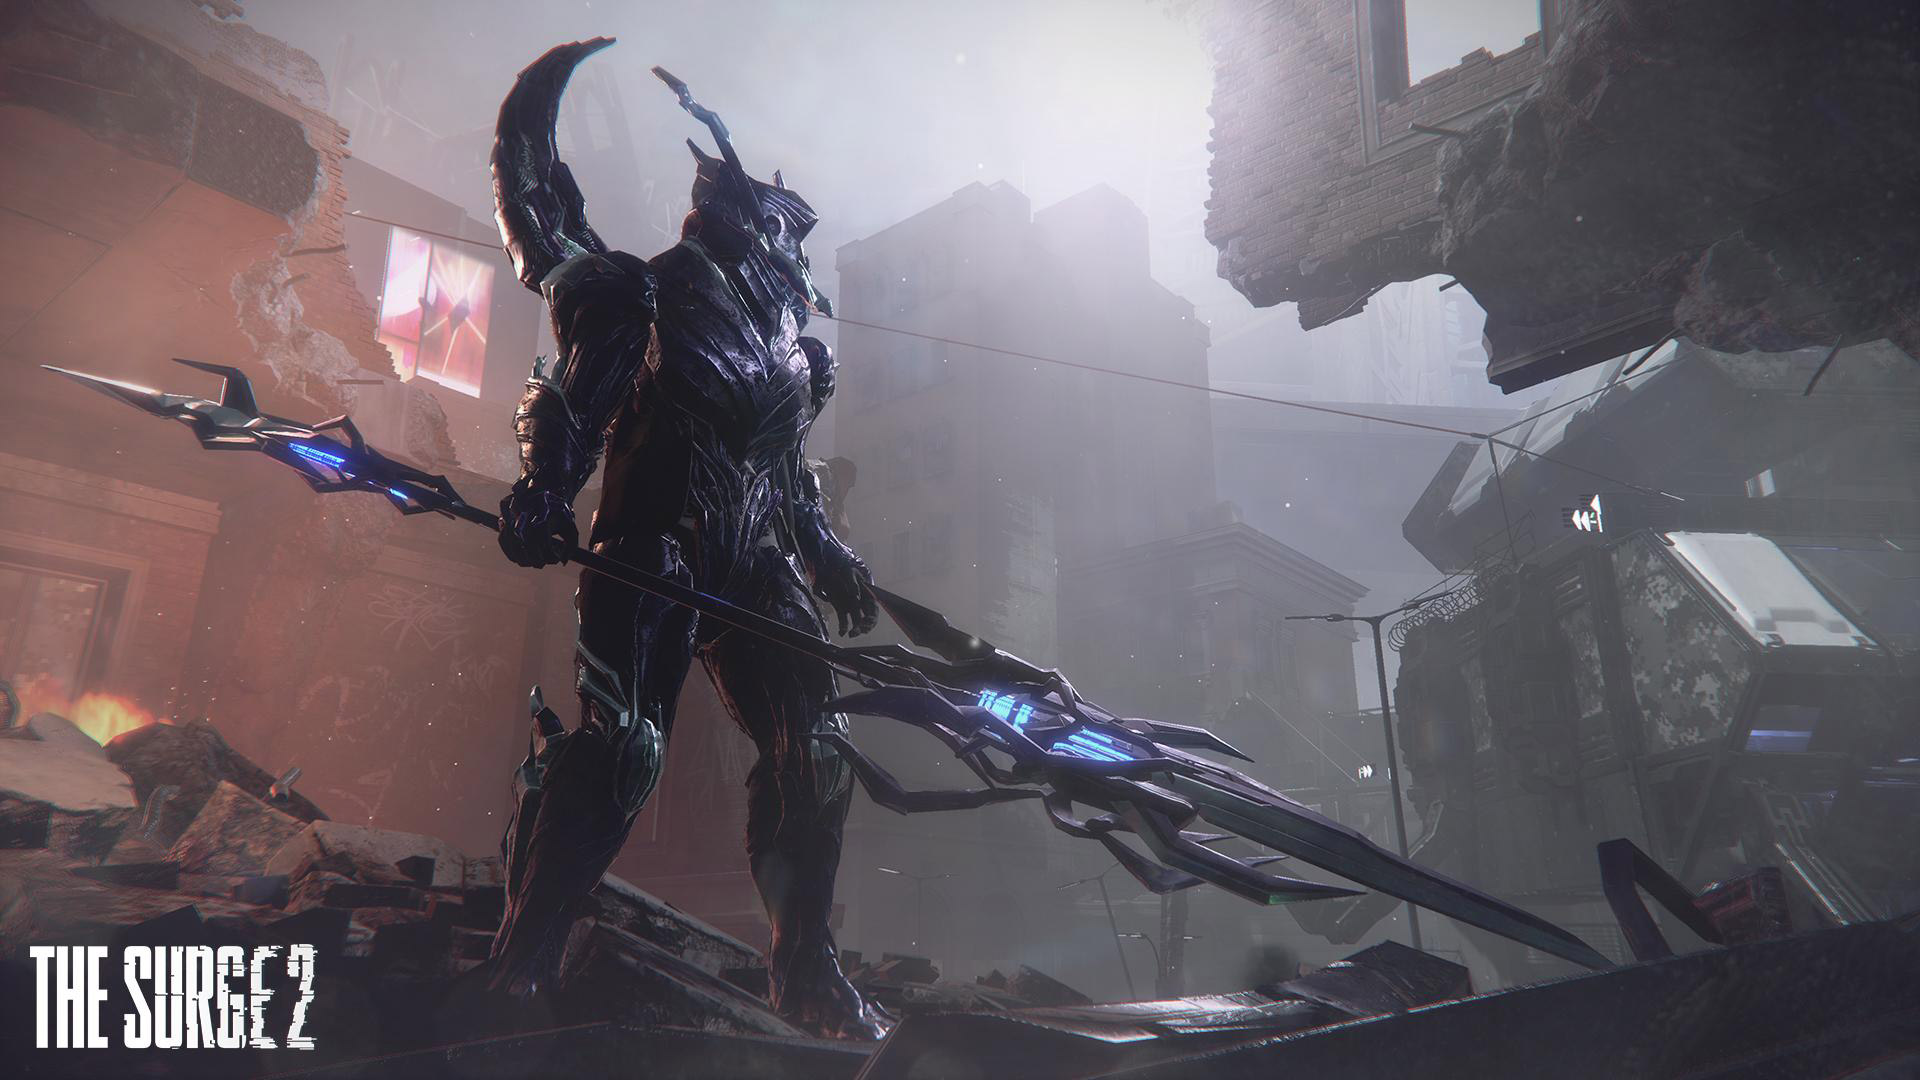 Free The Surge 2 Wallpaper in 1920x1080